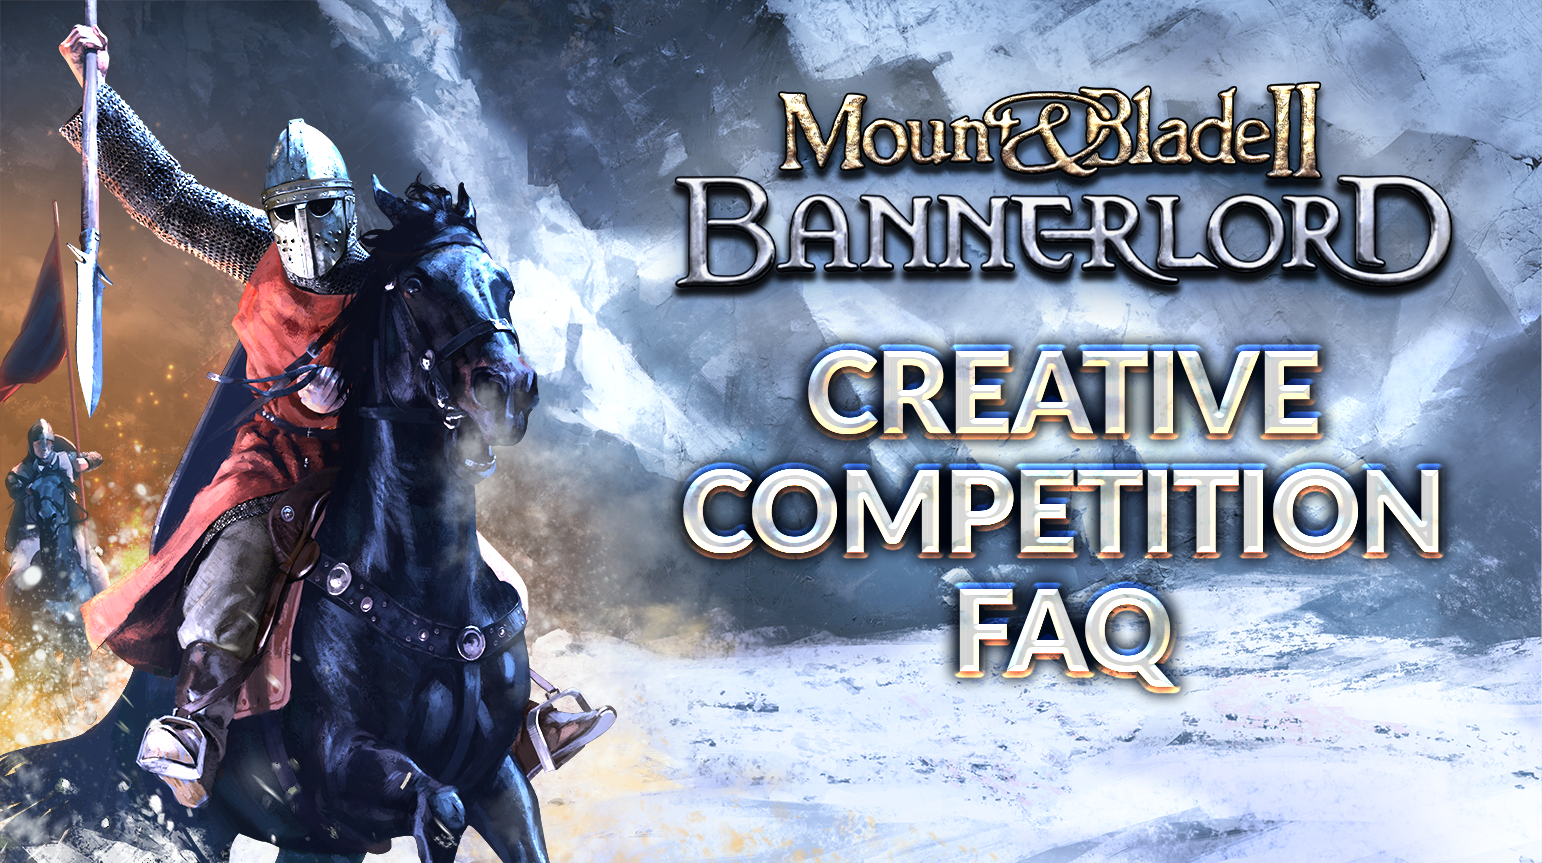 Bannerlord Creative Competition